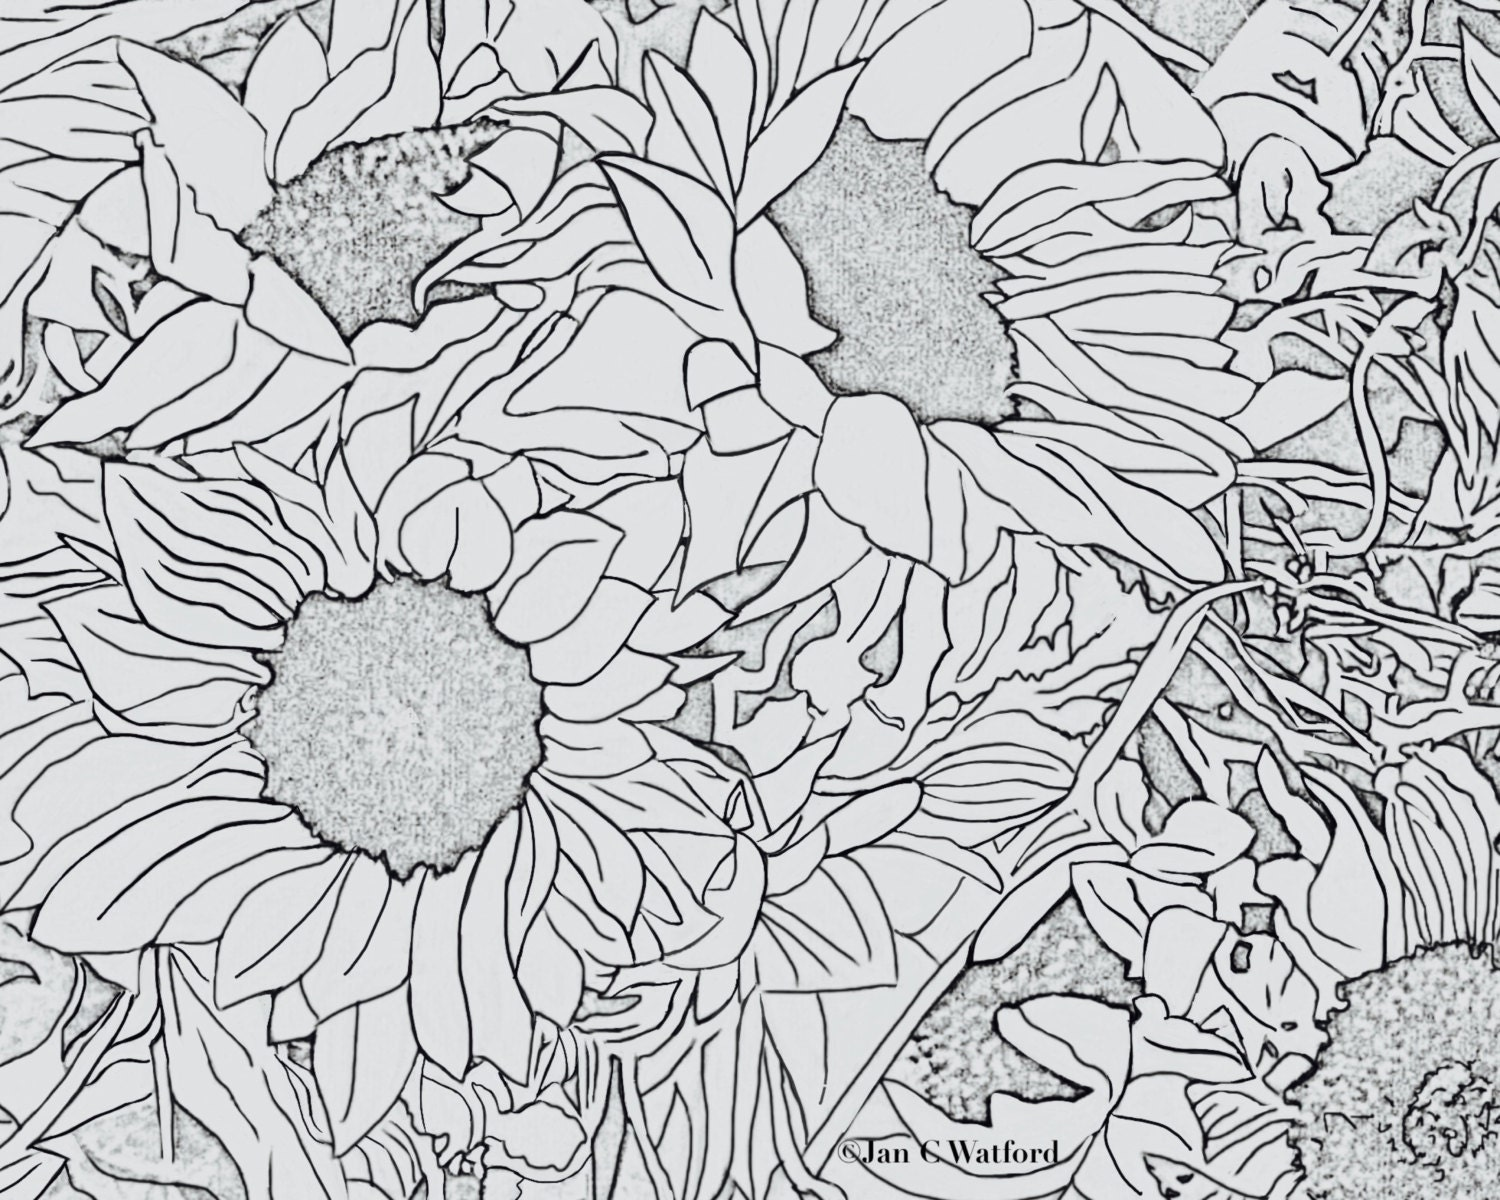 Sunflowers Adult Coloring Pages With Birds - Worksheet & Coloring Pages